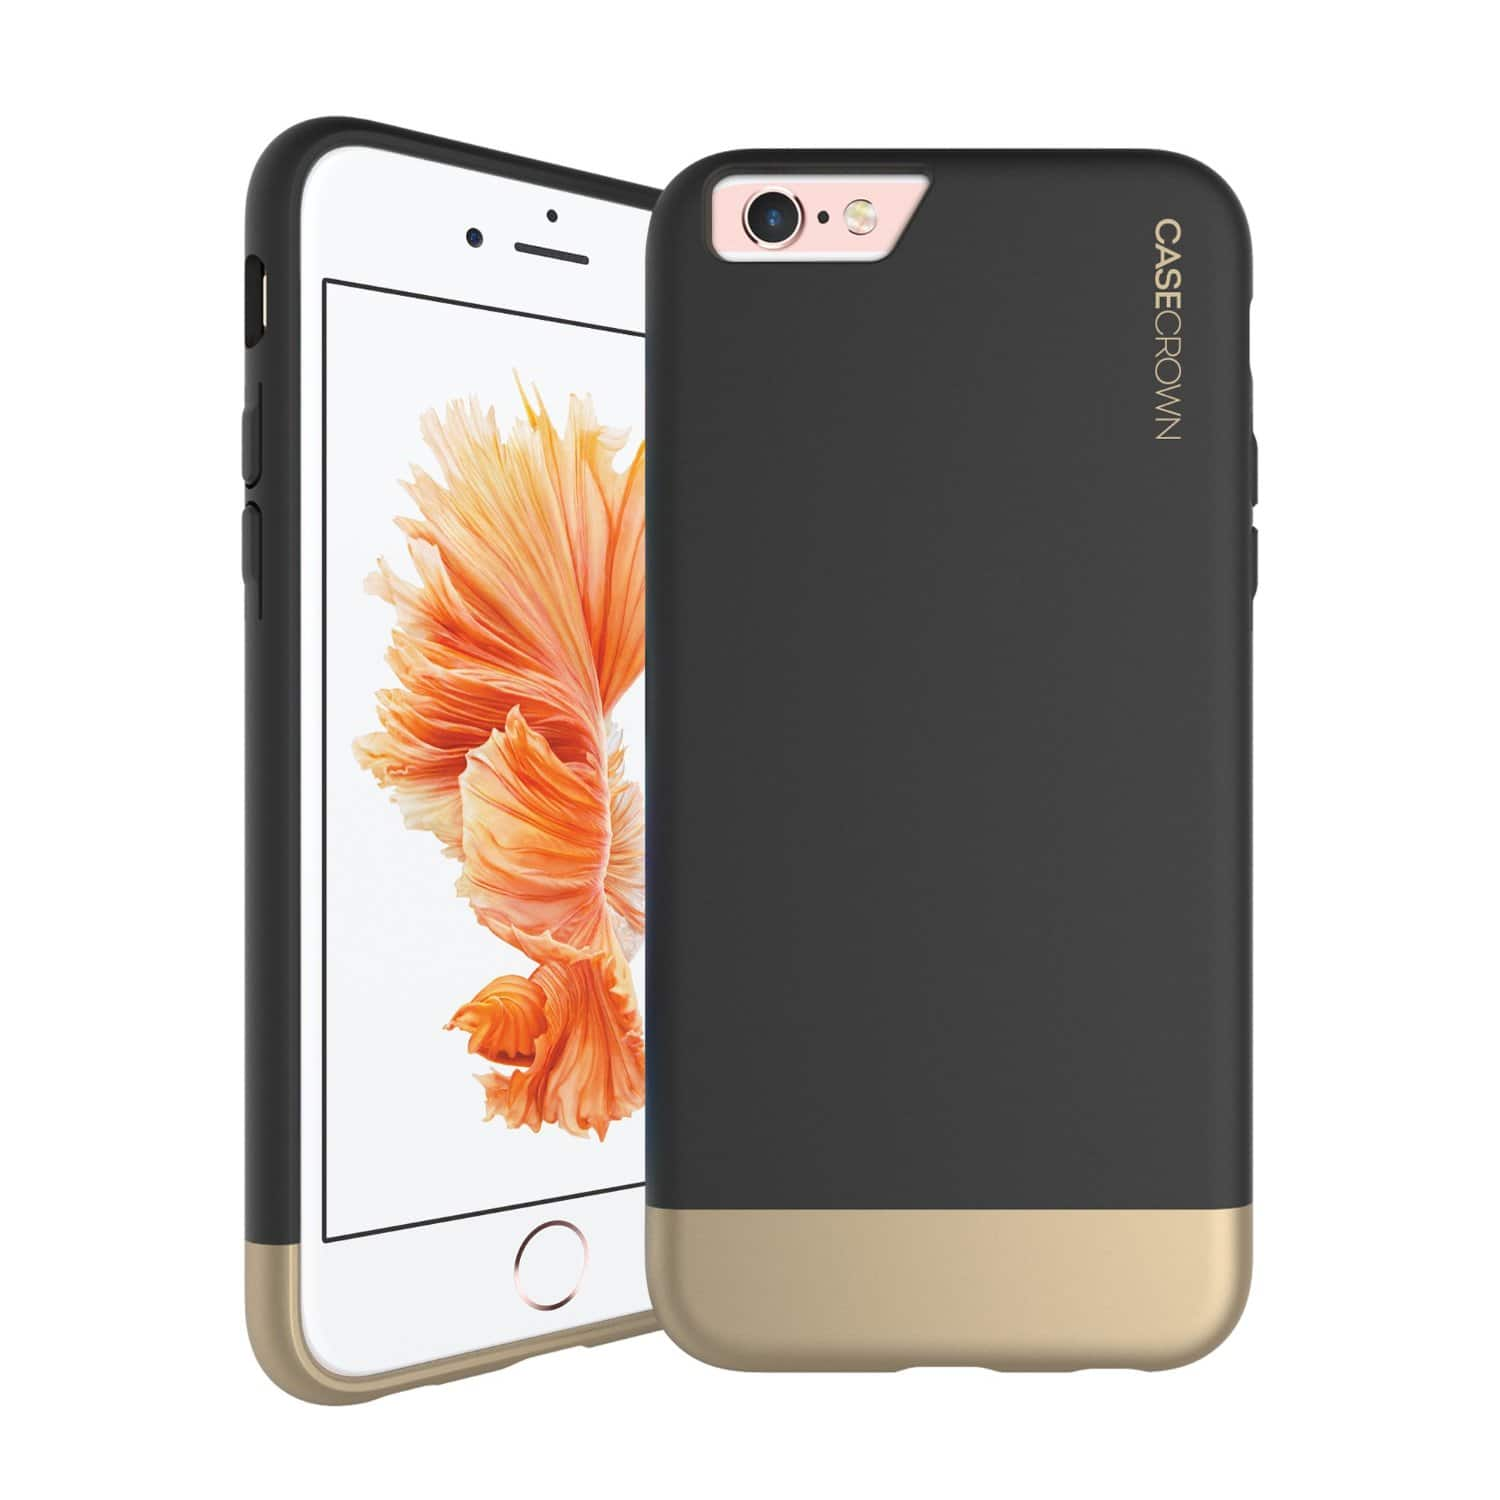 CaseCrown: iPhone 6/6+/6s/6s+ Case (various styles)  $3 & More